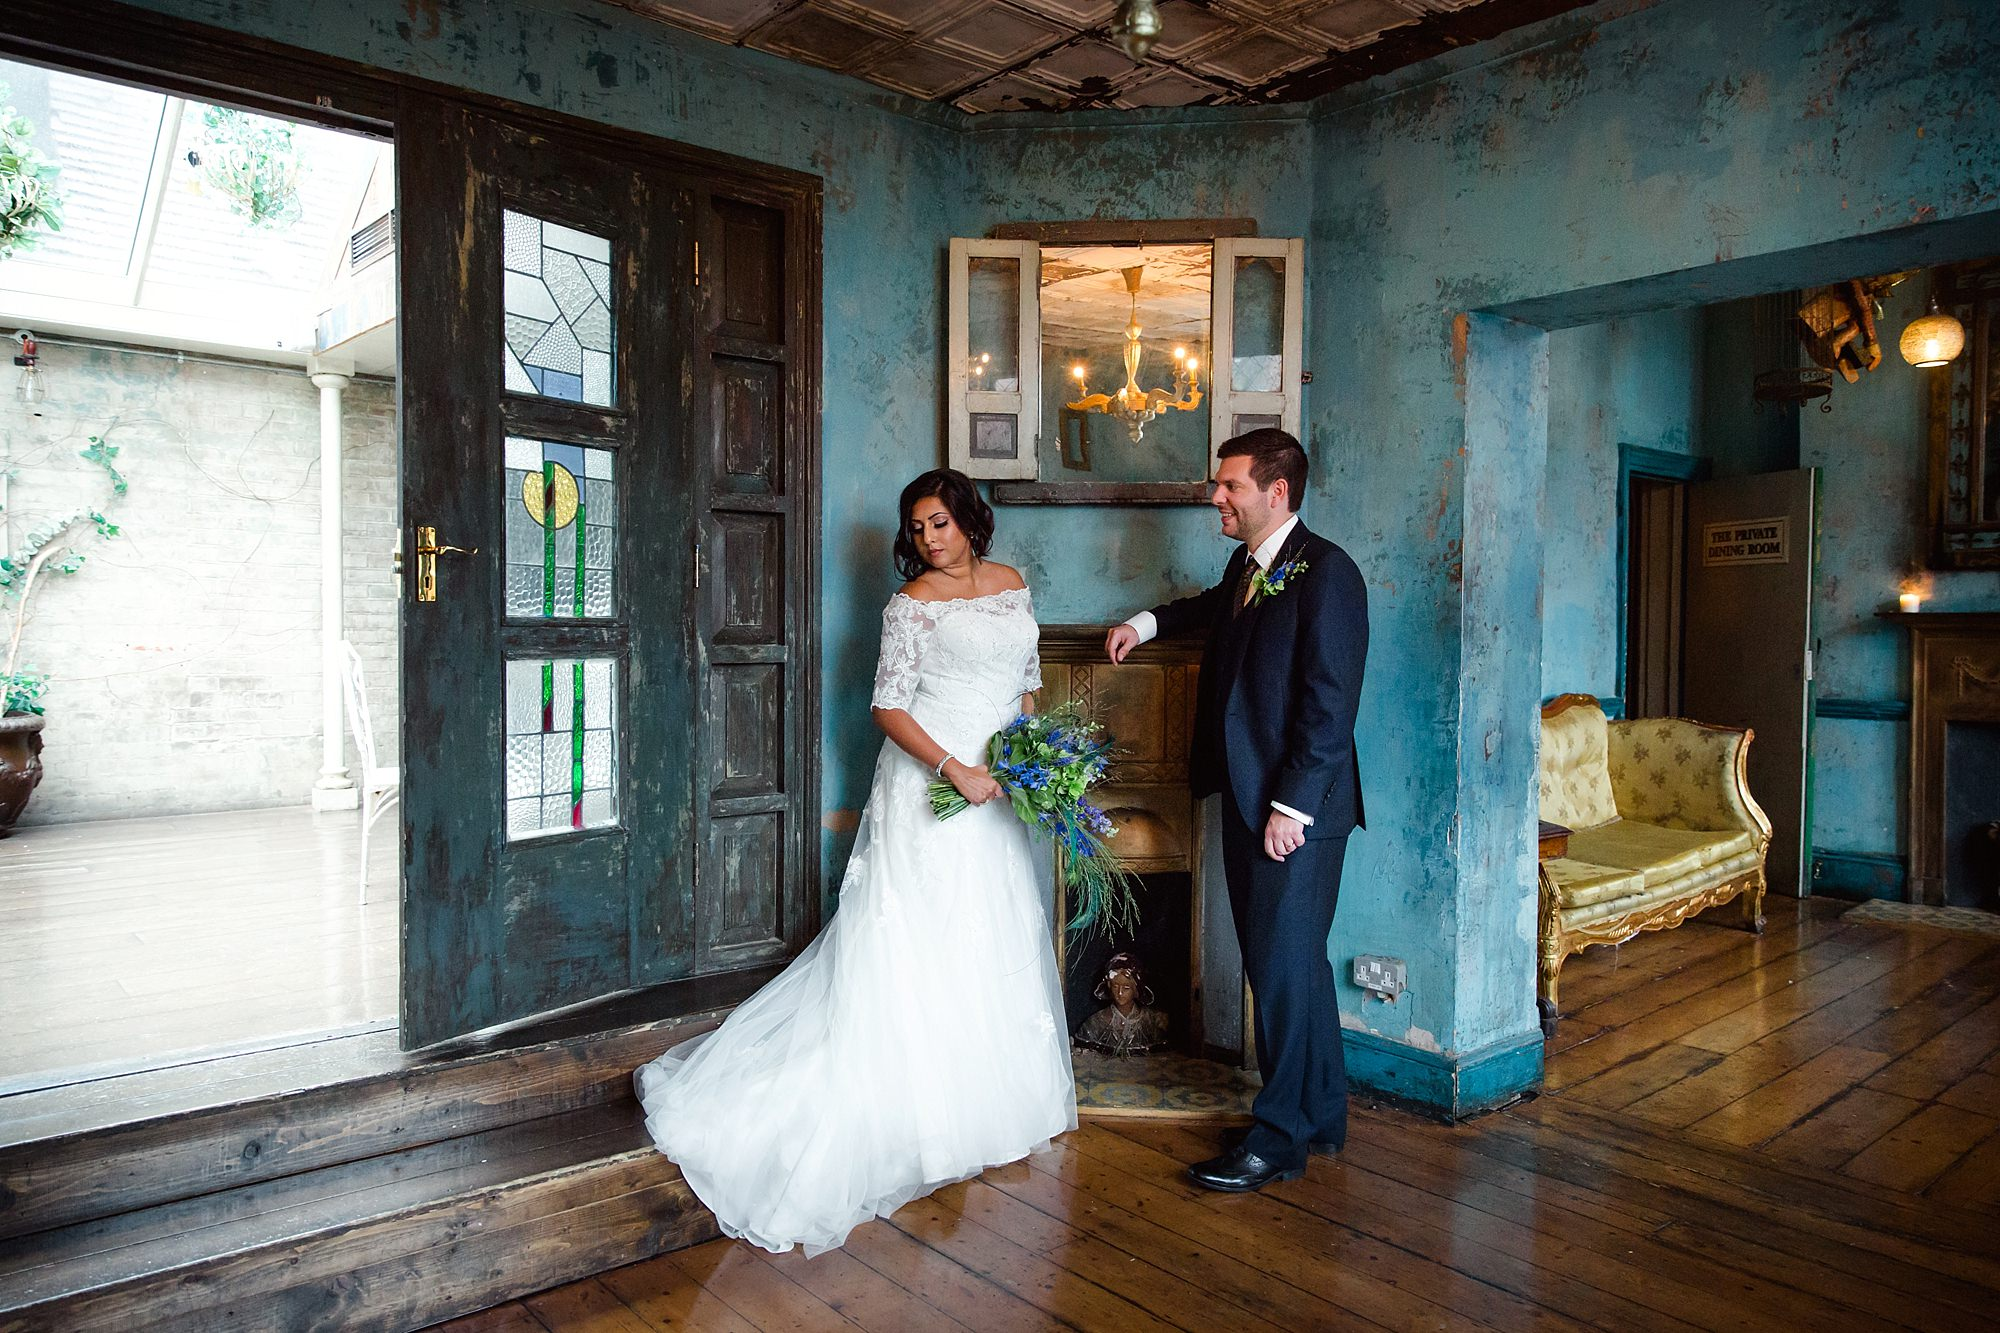 Paradise by way of Kensal Green wedding portrait